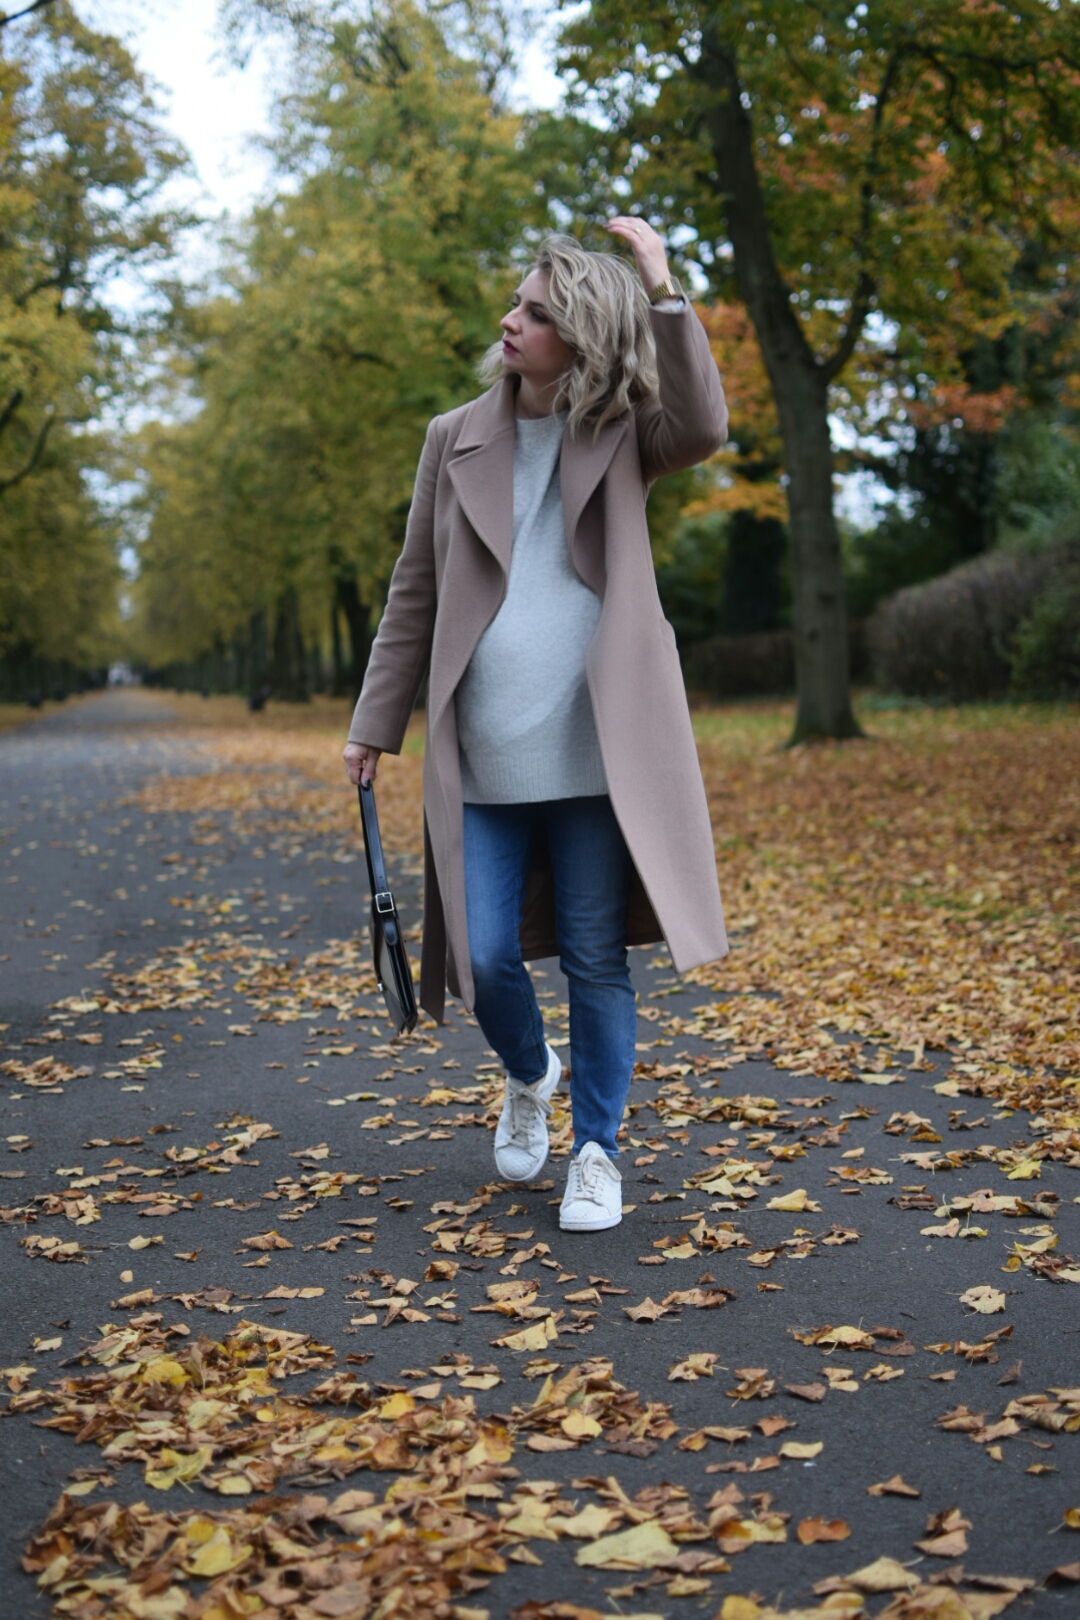 Jaegar Camel Coat,HM Grey Jumper,Topshop MOM Highwaisted Jeans,Adidas Stan Smiths and Celine Diamond Shoulder Bag